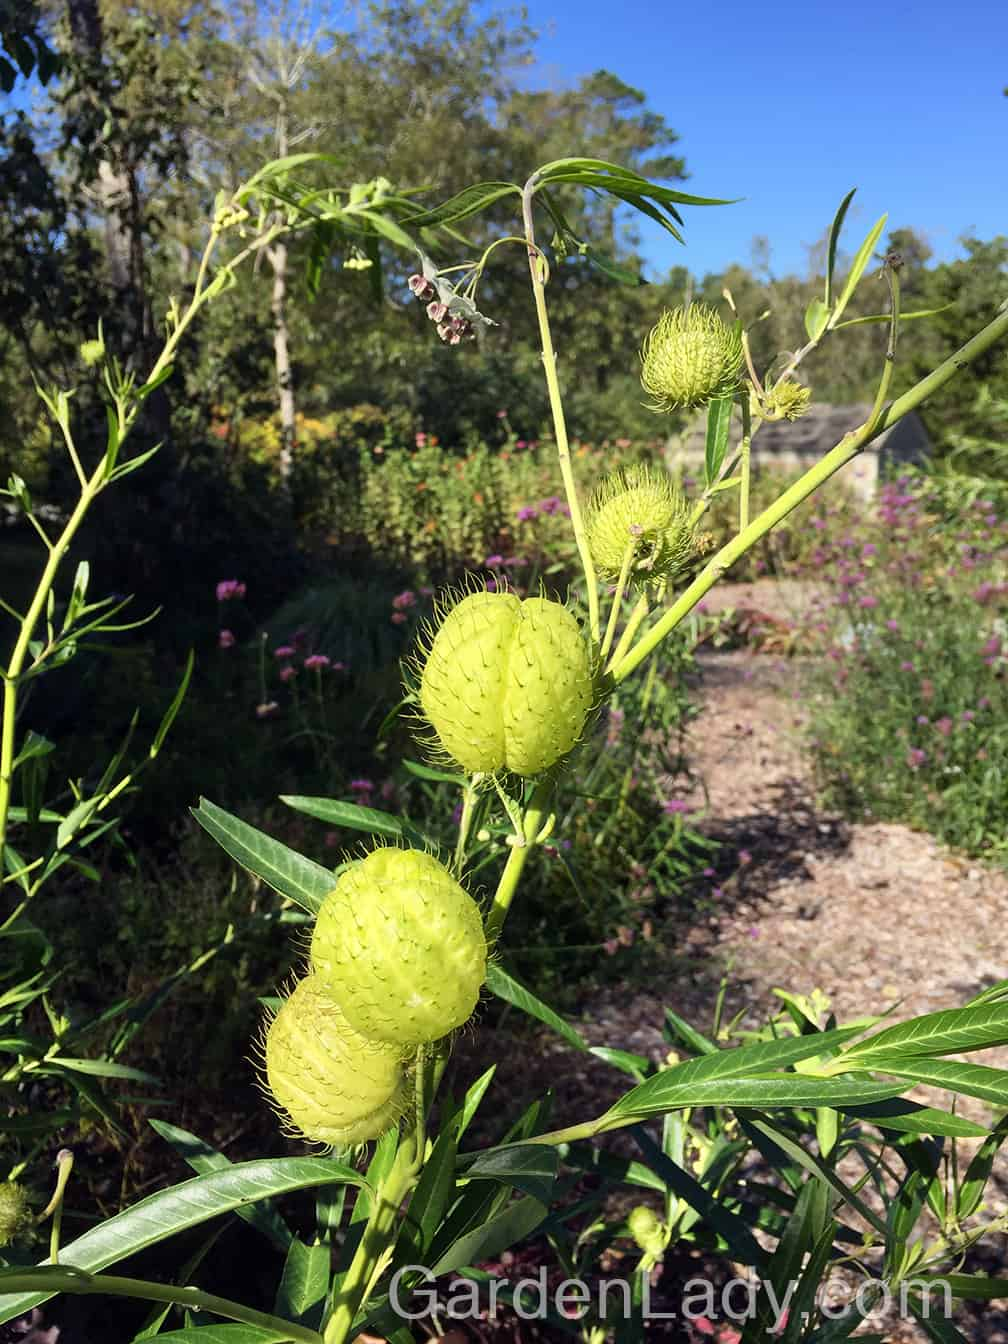 What would we do without plants that make us laugh? As guests arrive, give them a cocktail or a beer and then lead them into the garden where they can see that you're growing hairy balls. YES, you are truly growing hairy balls and whether your company is 6 or 96, they will love this plant. Call it Gomphocarpus physocarpus, balloon plant, or hairy balls, this tall plant makes everyone happy.